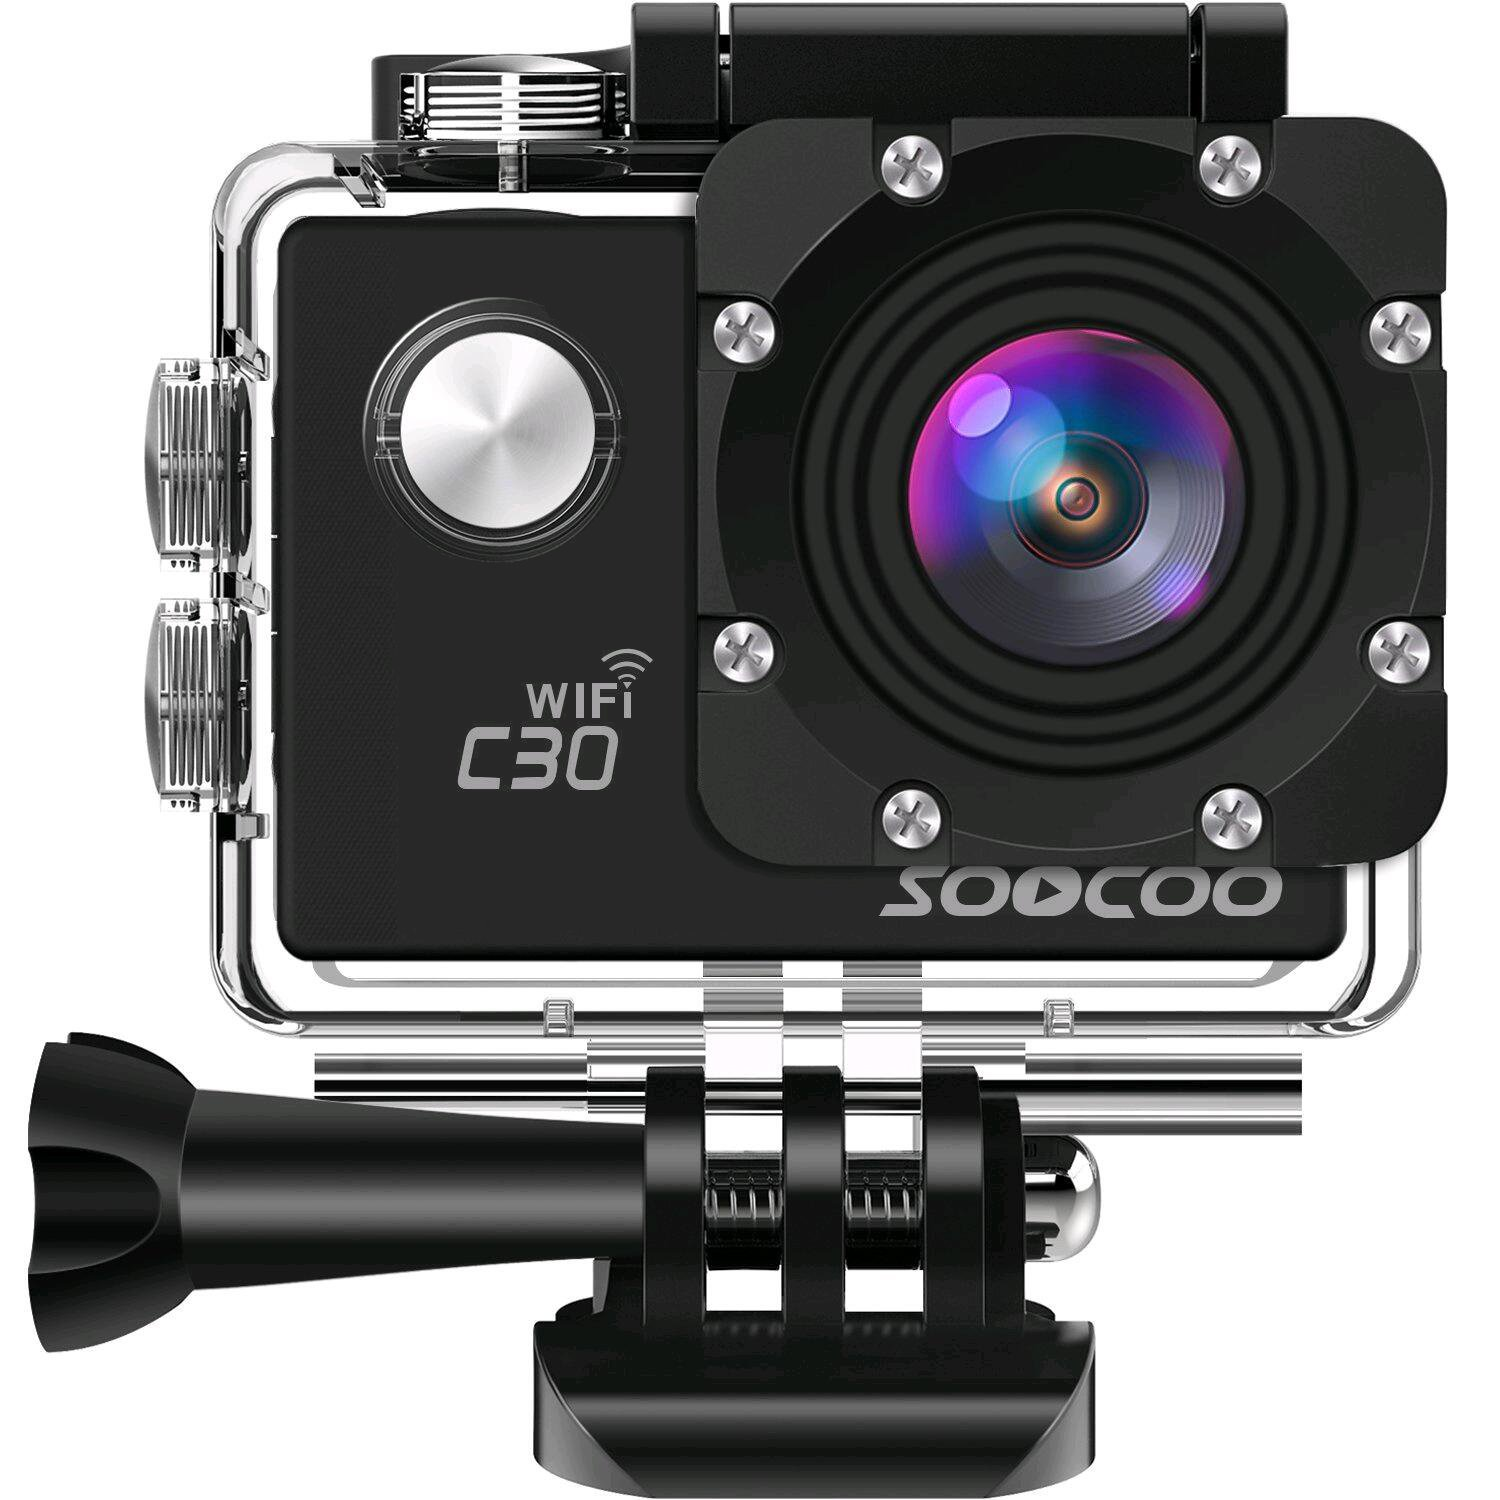 4K WIFI Action Camera Waterproof Cam,SOOCOO C30 Video Sport Camera 20MP 2'' LCD 170 degree Wide-angle 30M Underwater Camcorder With 2x1350mAh Batteries 18 Accessories Kit (SD Card Not Included) - Black